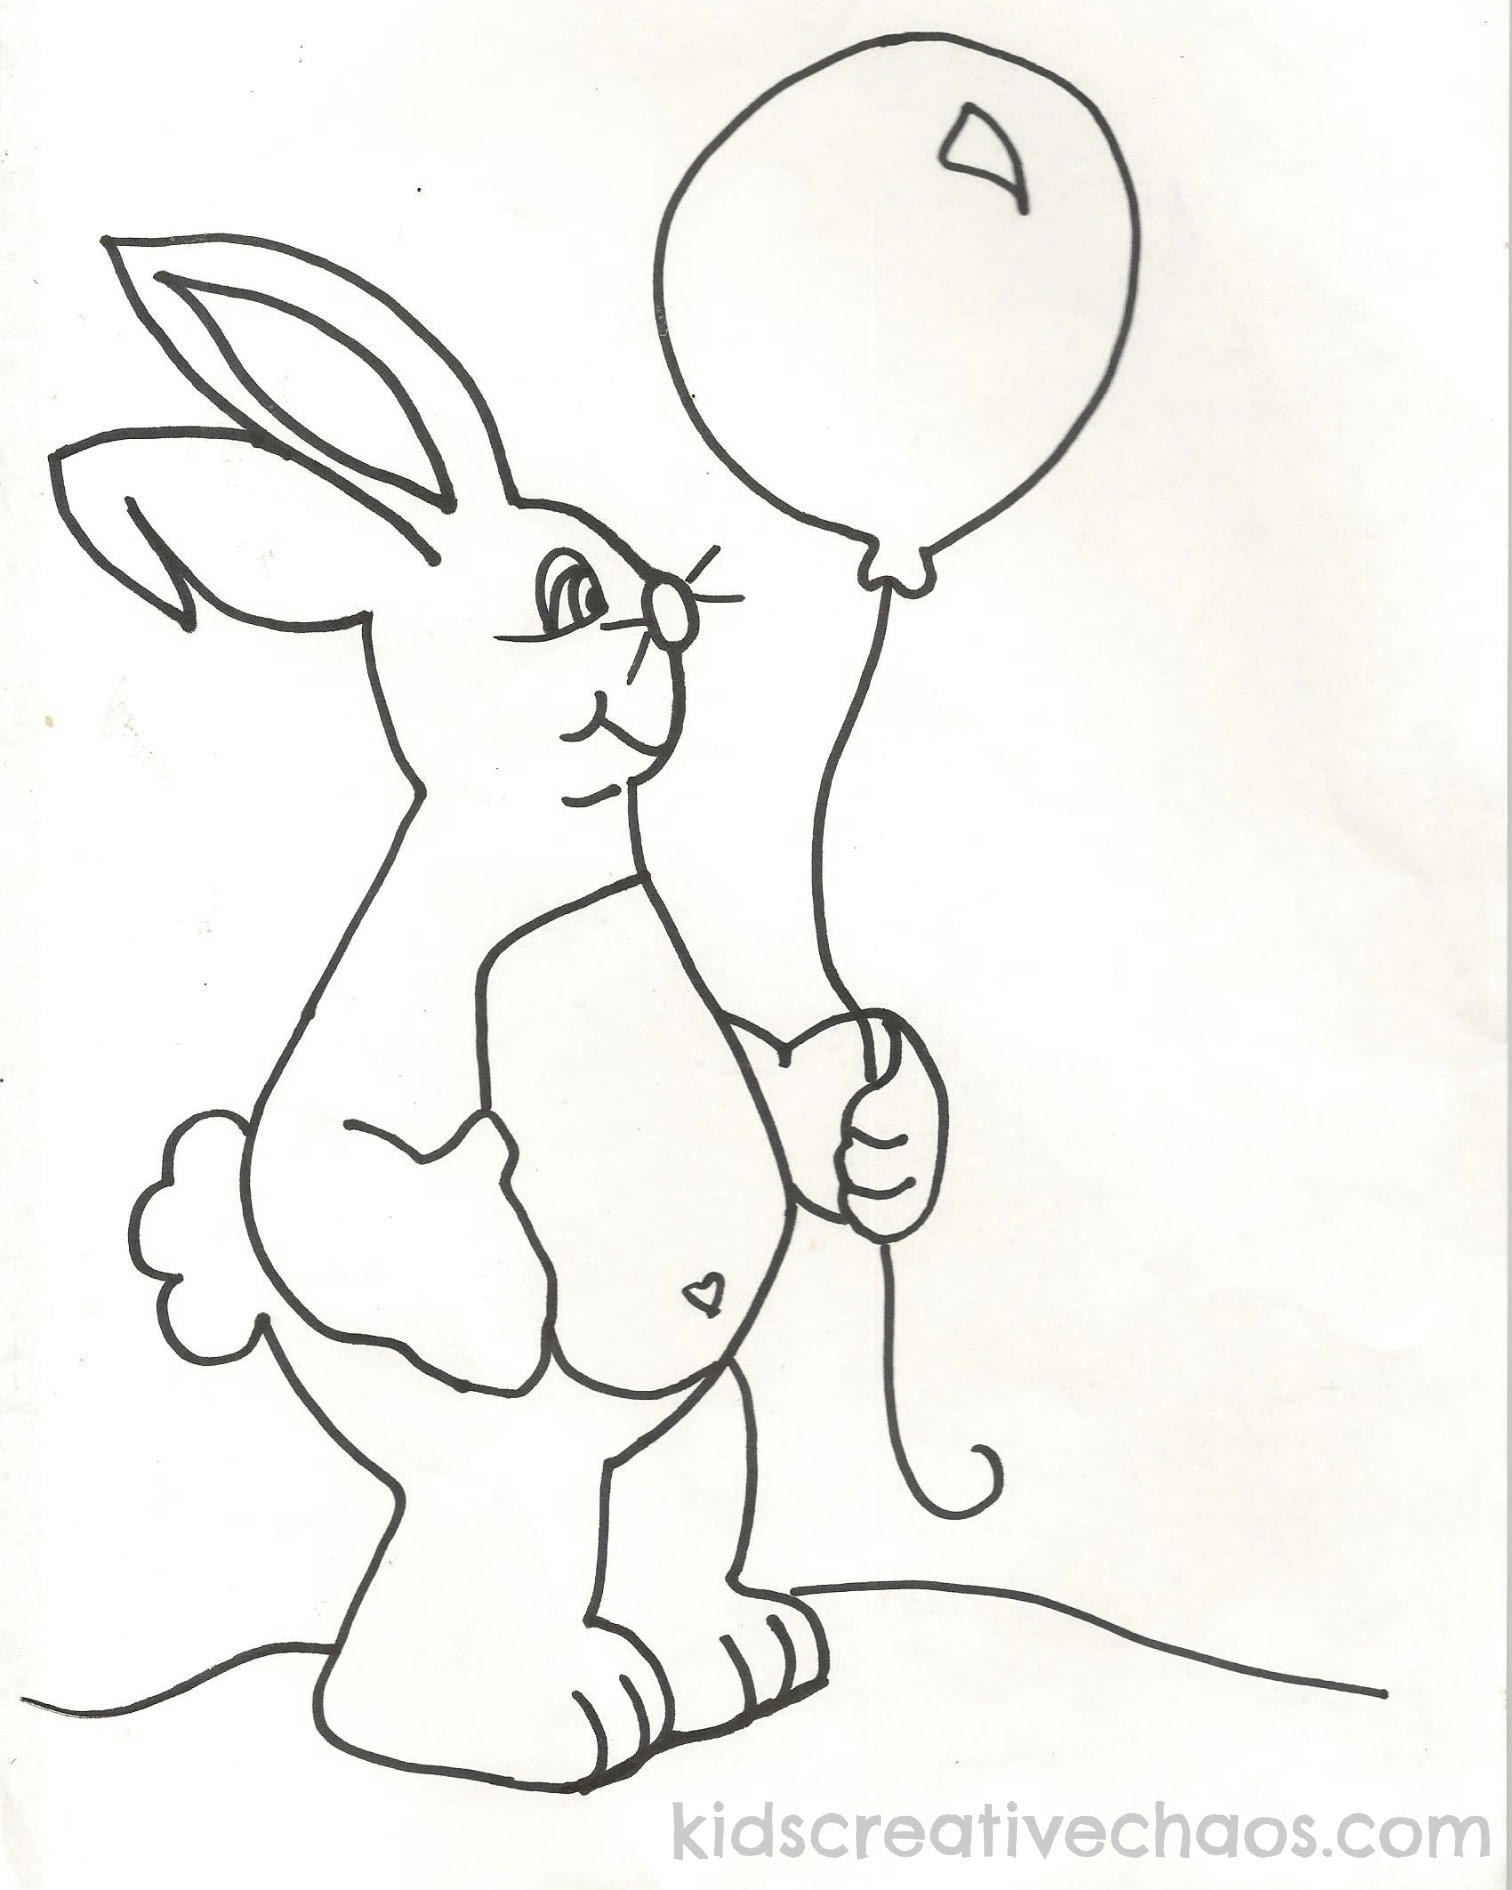 Easter Free Printable Coloring Sheets: Baby Bunny with